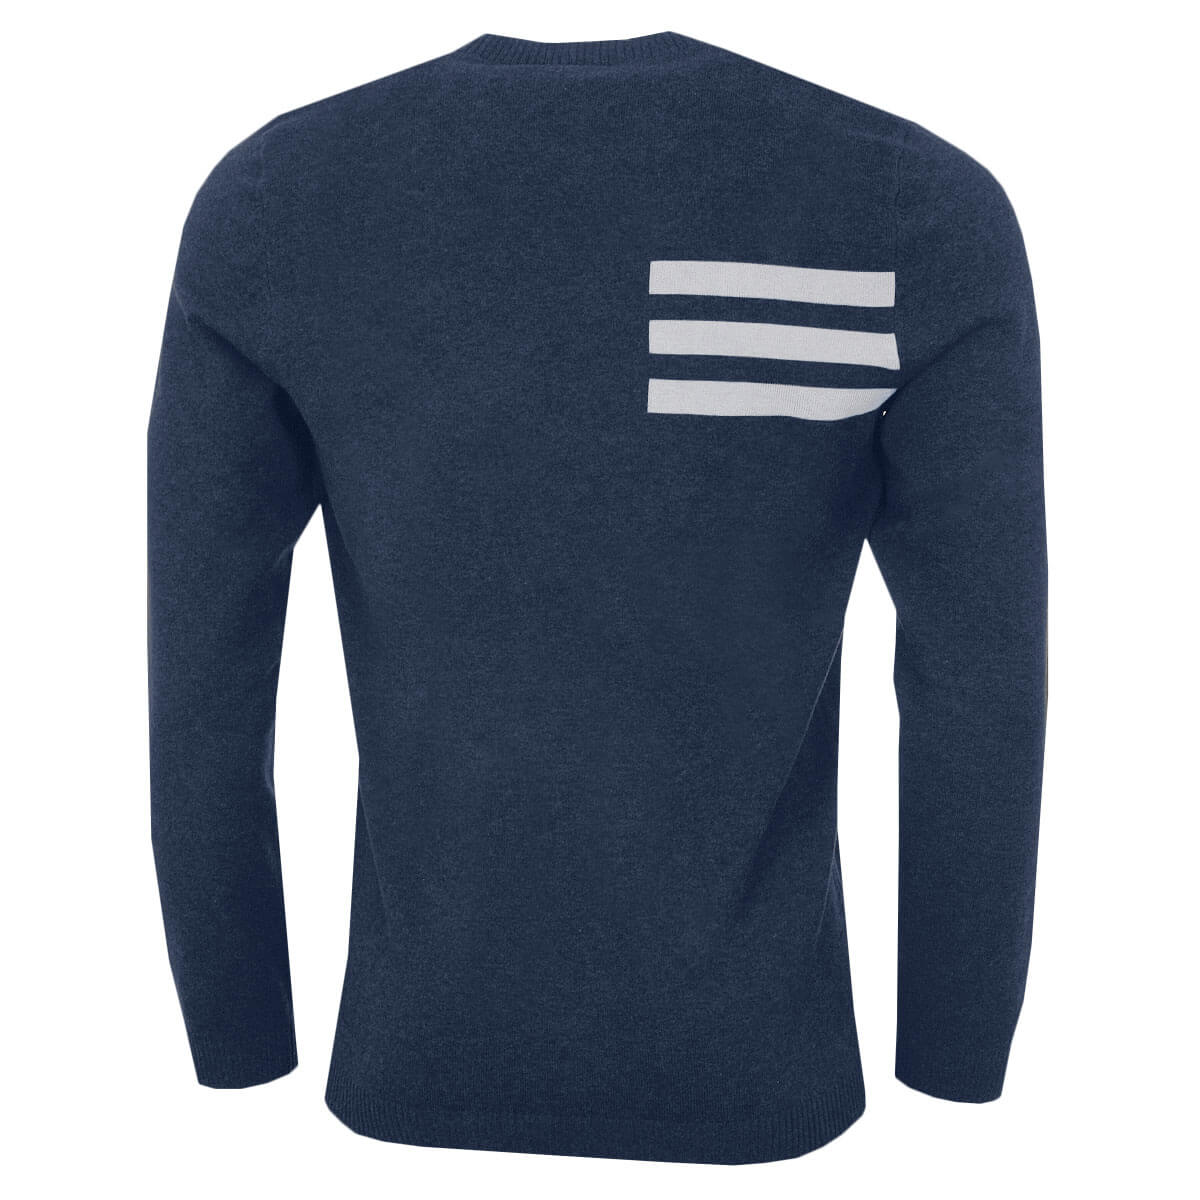 adidas-Golf-Mens-Blend-Cotton-Crew-Neck-Jumper-Pullover-Sweater-44-OFF-RRP thumbnail 5